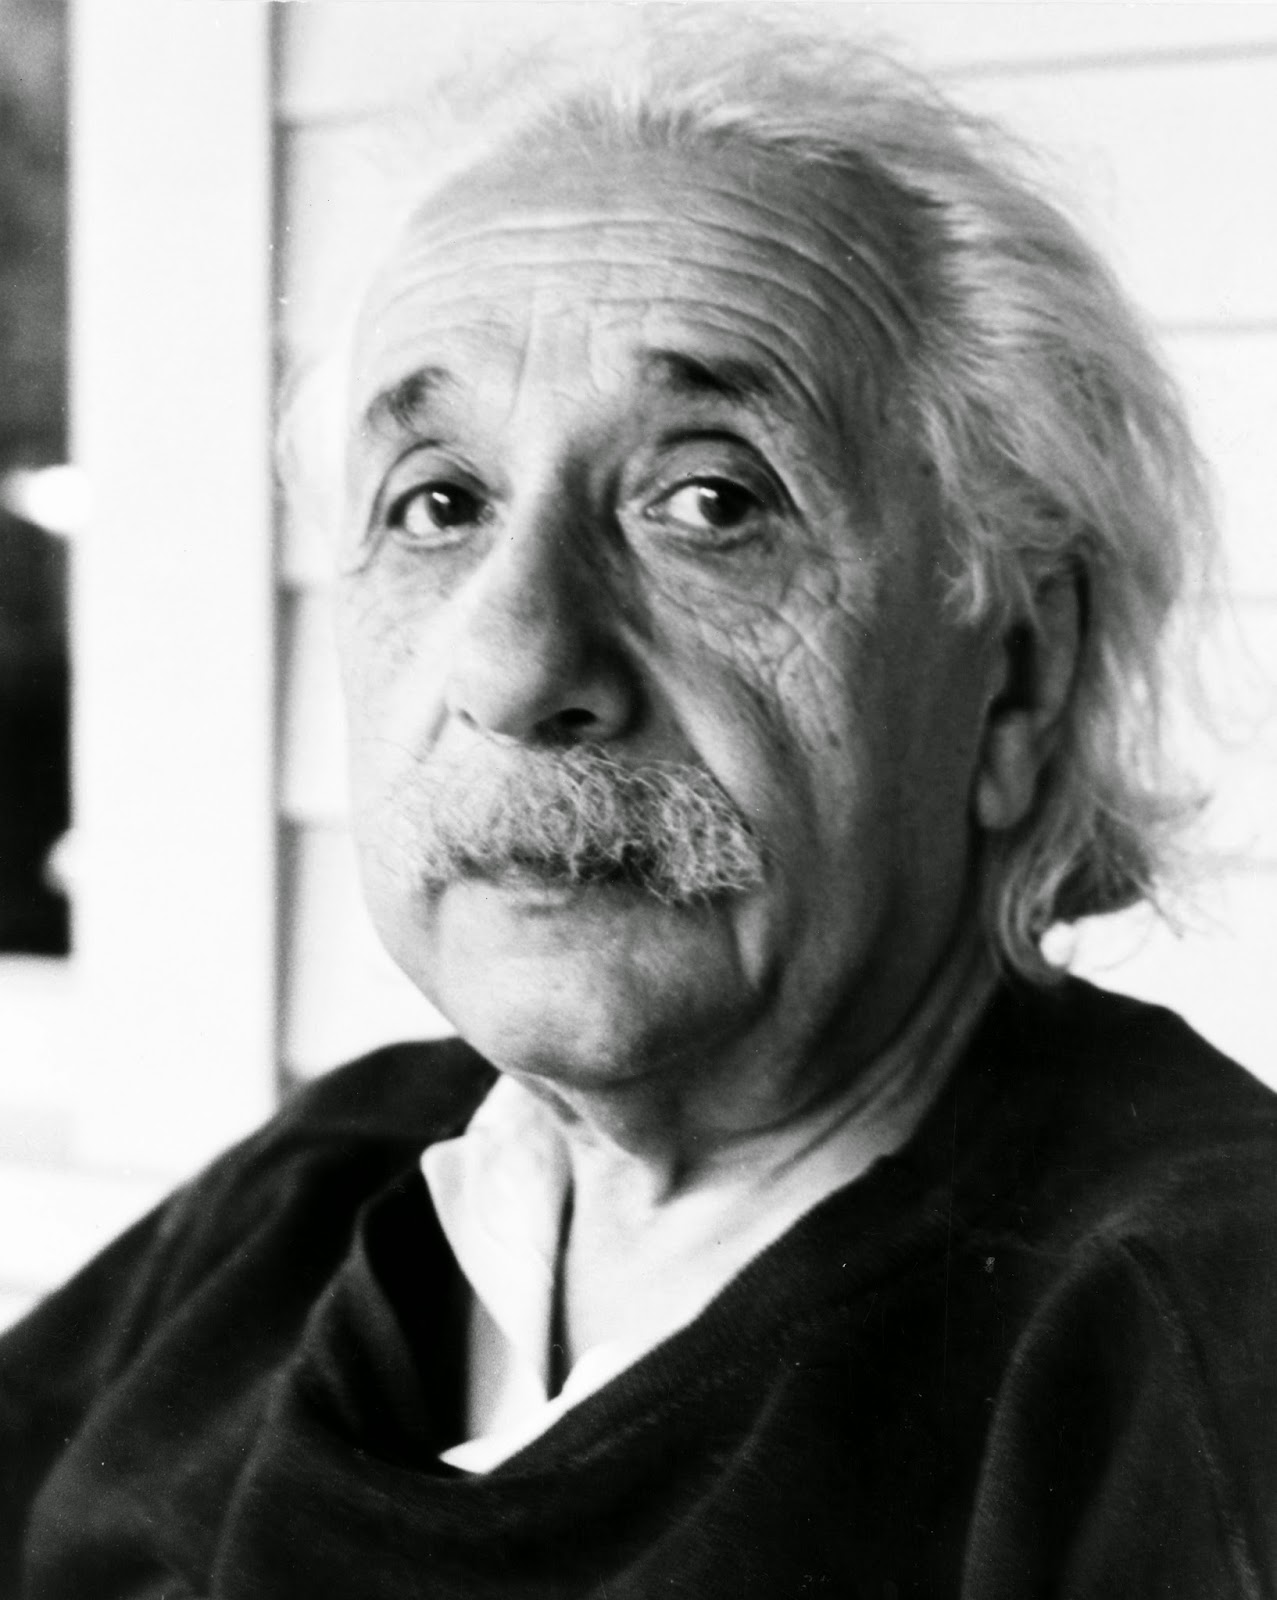 dizzy s wanderings wonderings wondering about albert einstein wondering about albert einstein